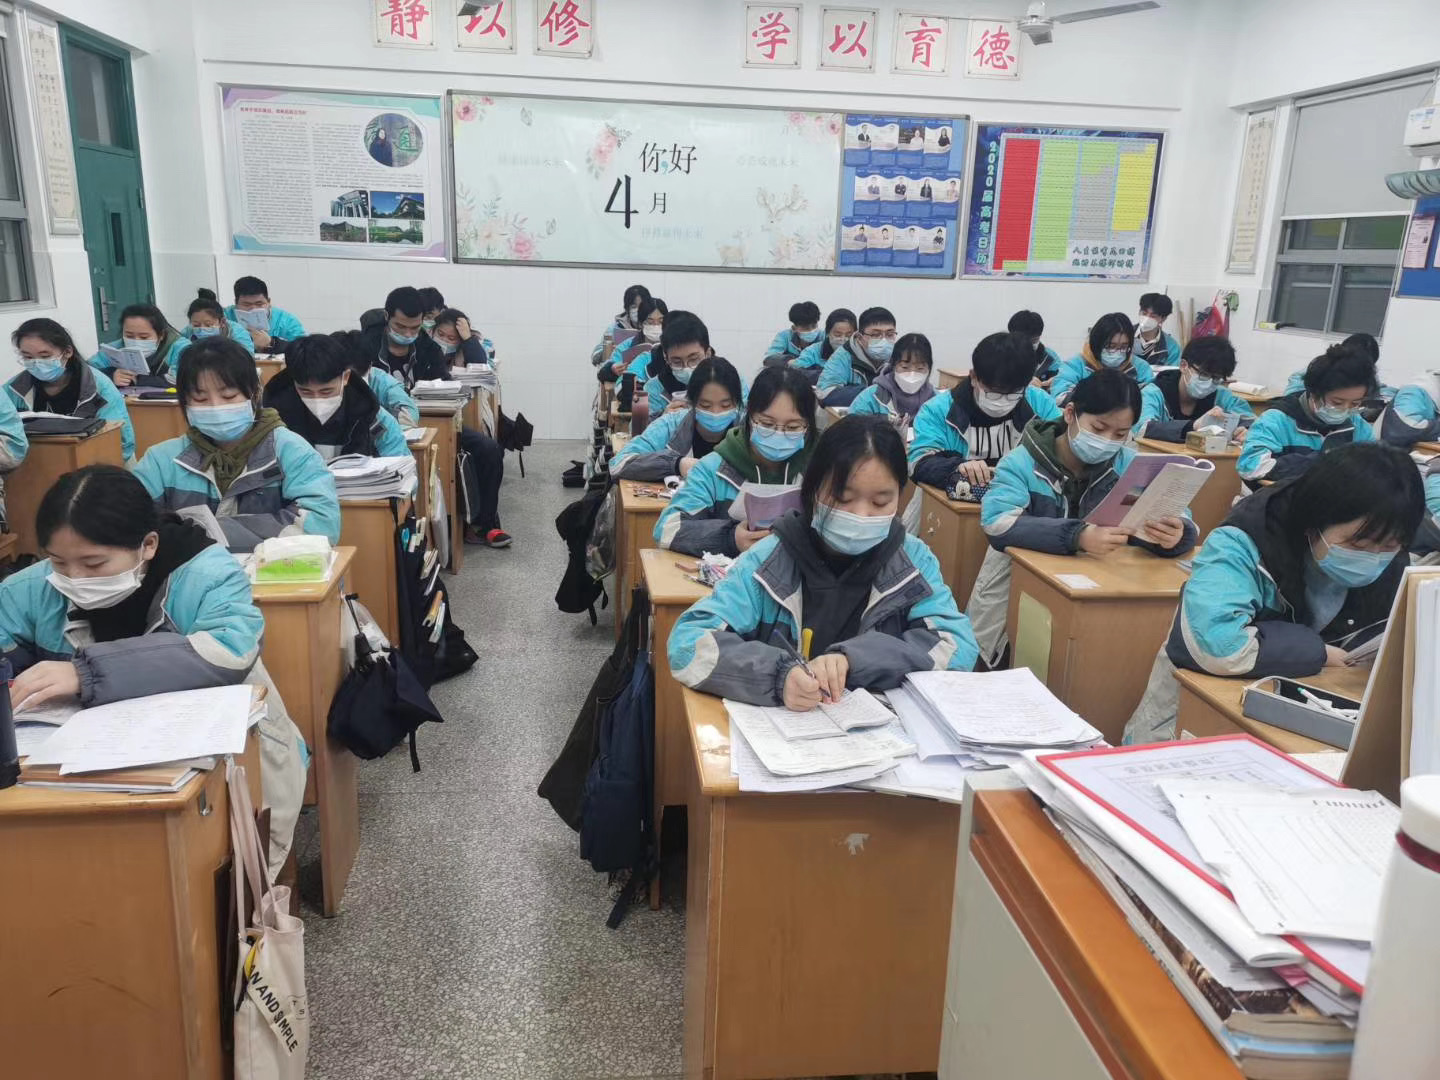 Coordinating epidemic prevention and education: schools in China reopened with caution